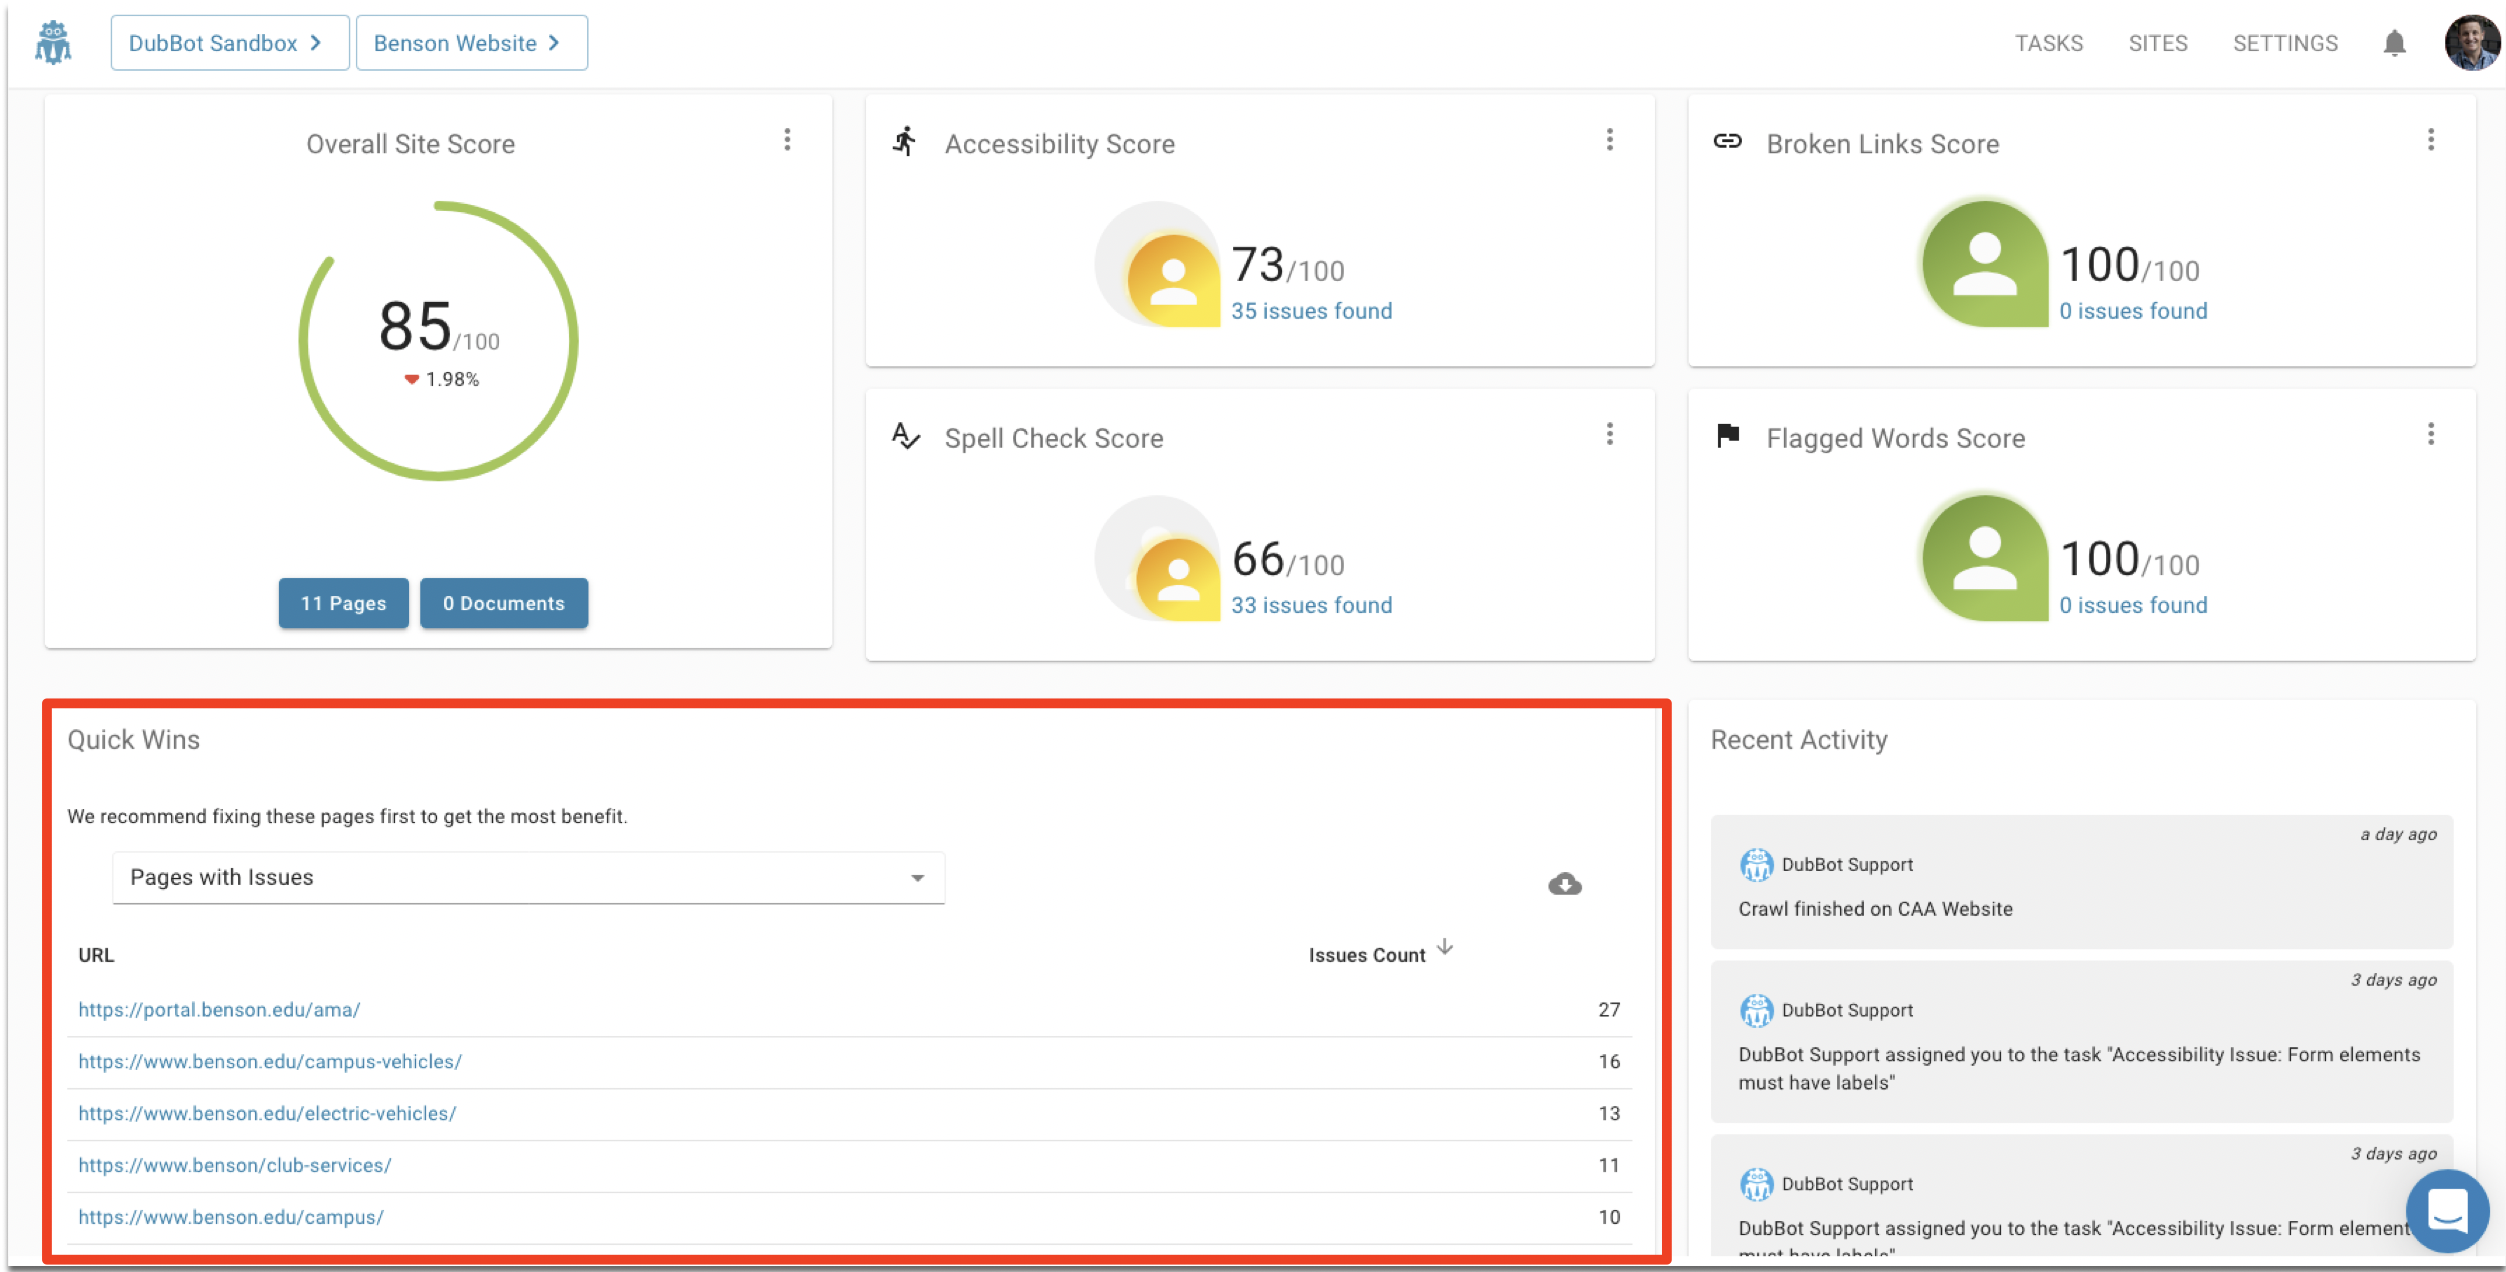 In Site Dashboard view, the Quick Wins panel is highlighted in red.